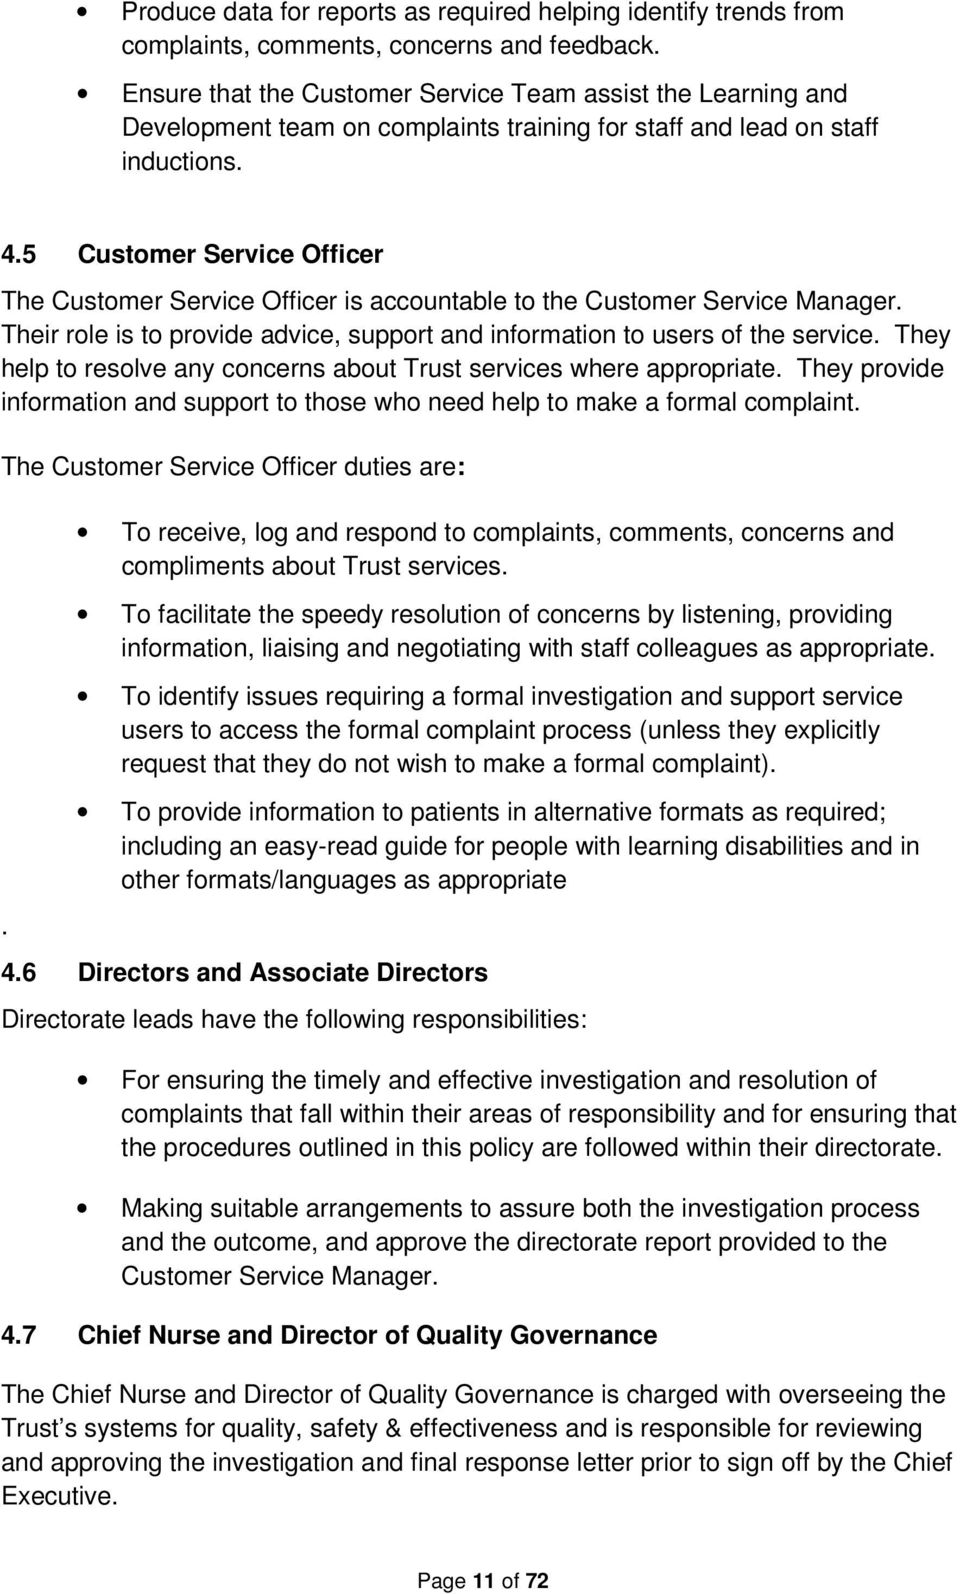 5 Customer Service Officer The Customer Service Officer is accountable to the Customer Service Manager. Their role is to provide advice, support and information to users of the service.